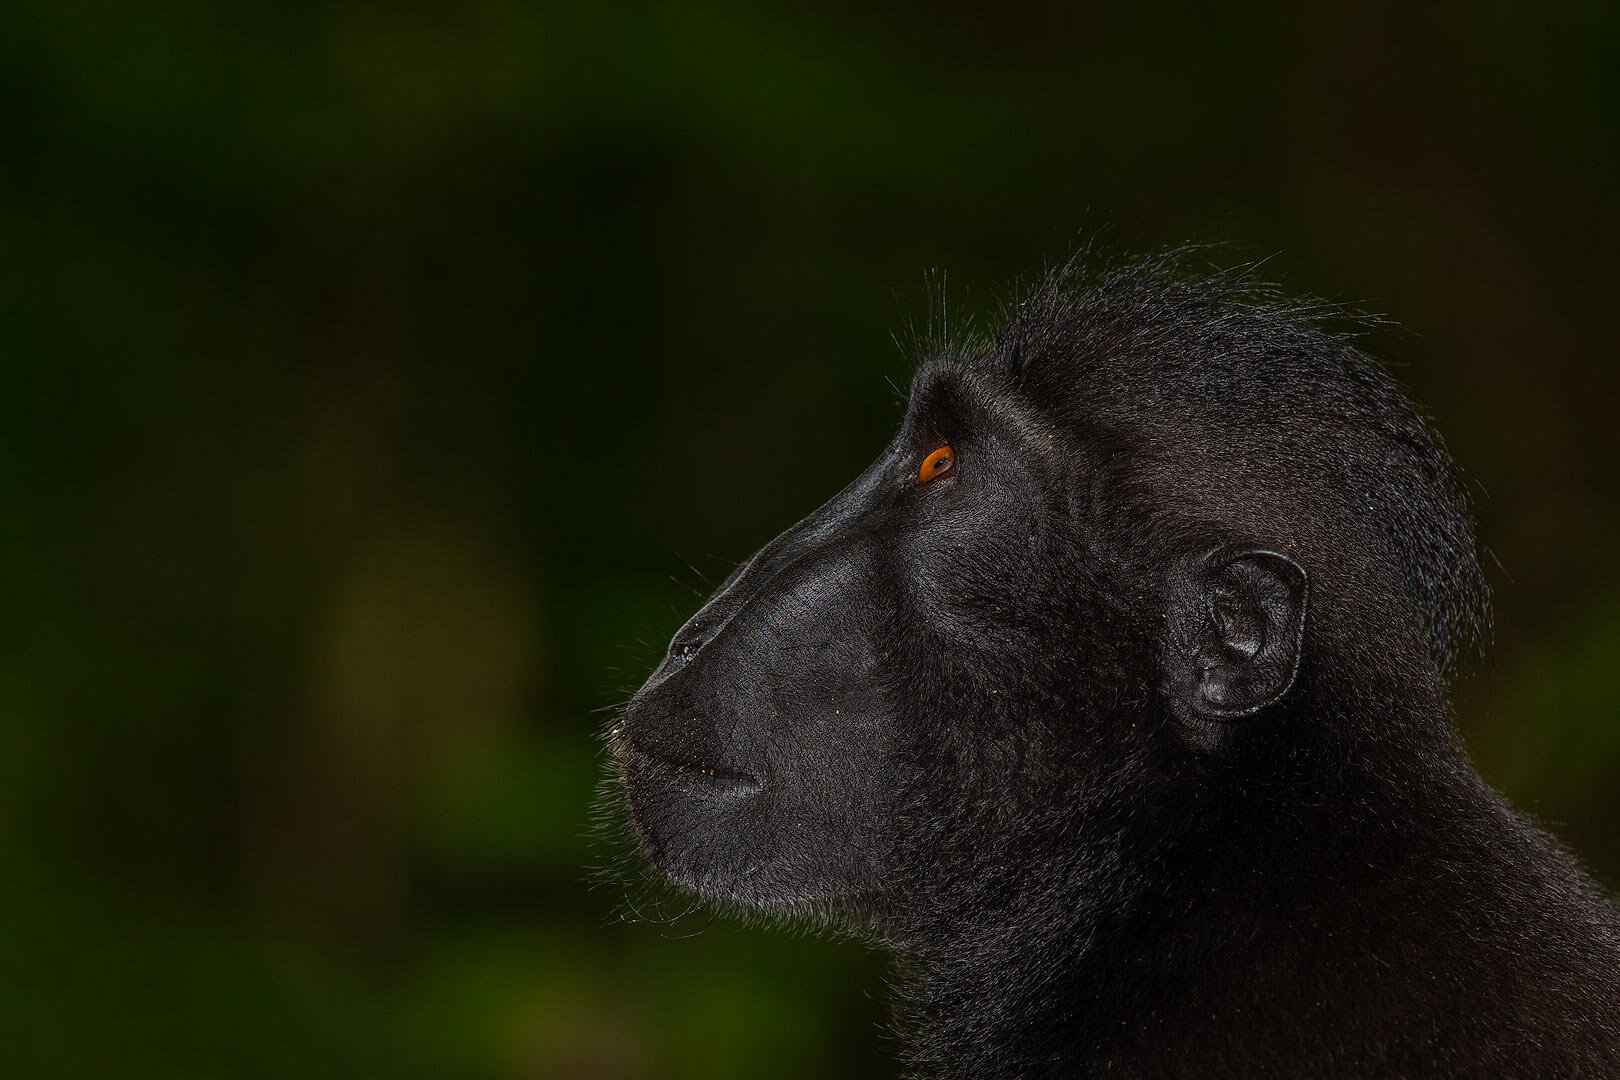 Black-crested-macaque-looking-up-3437-copy.jpg